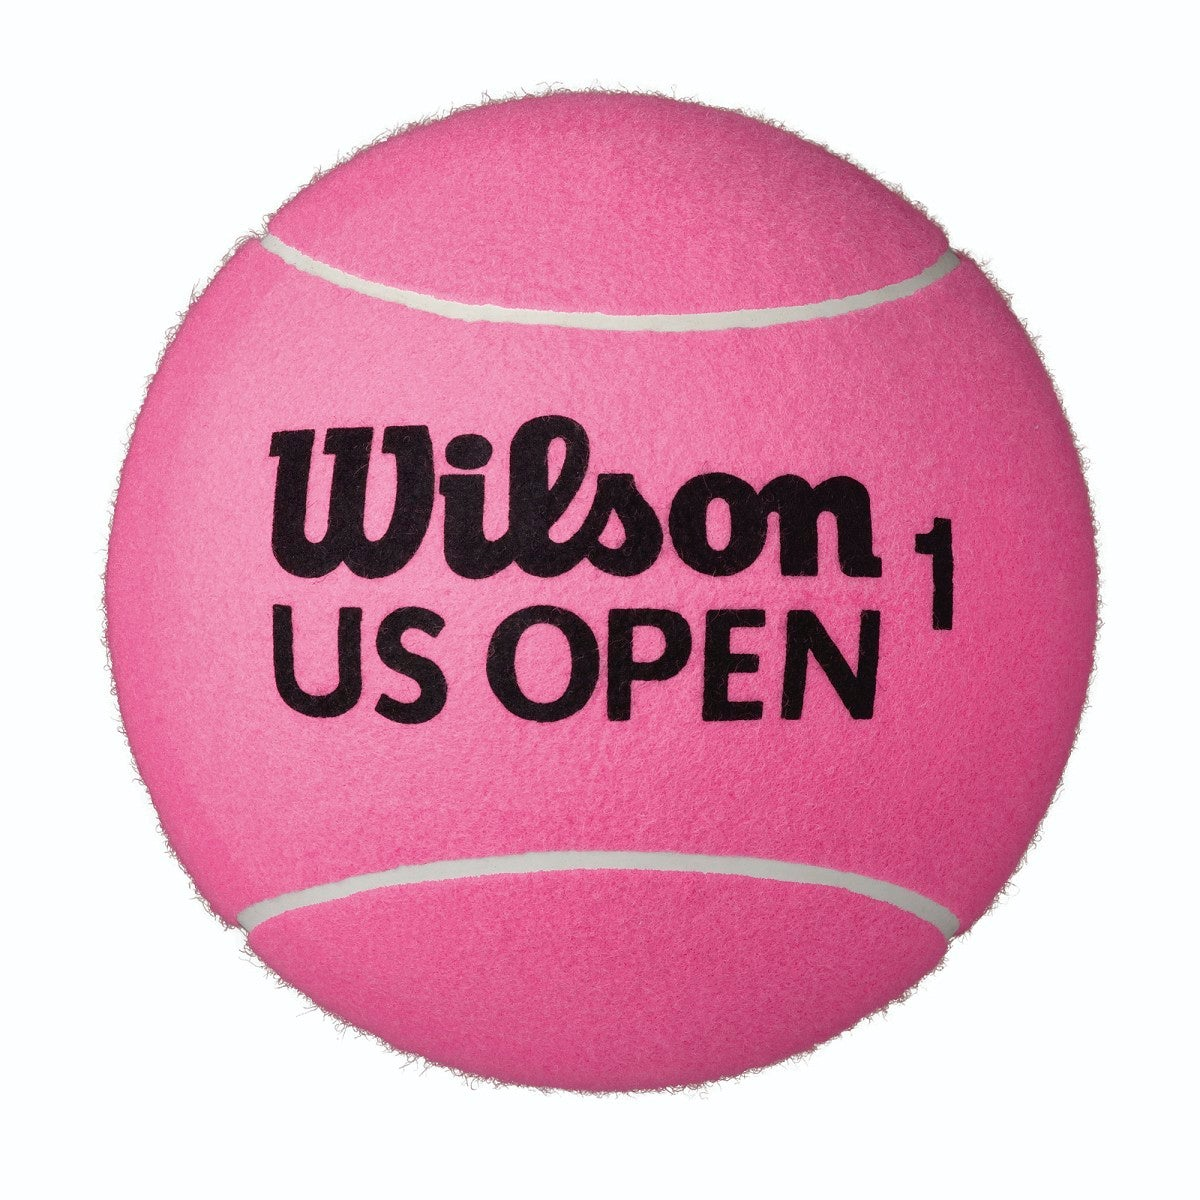 US OPEN JUMBO TENNIS BALL - PINK, 9 IN | Wilson Sporting Goods